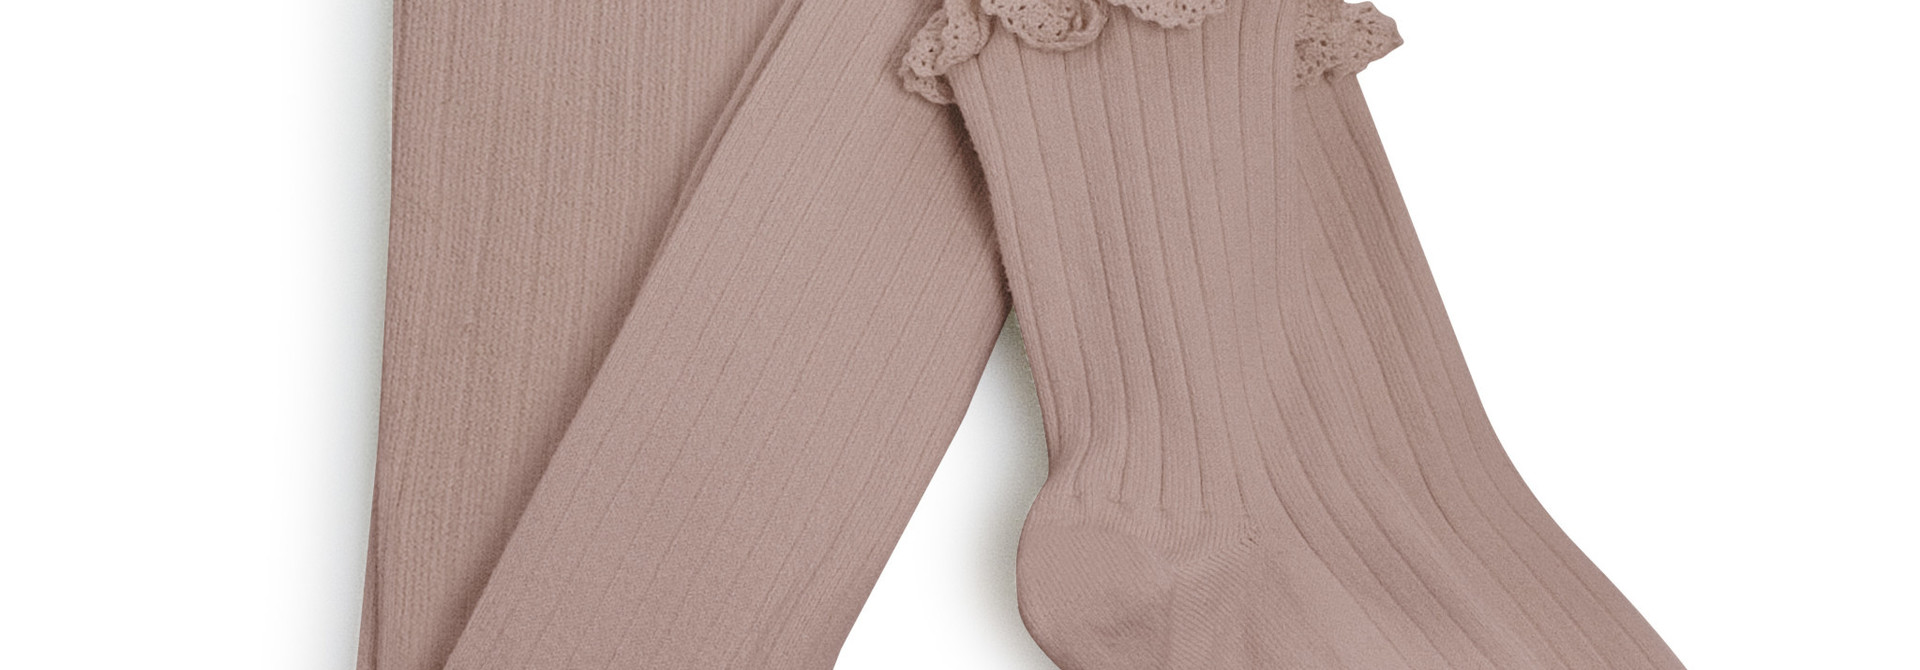 Lace Frill Maillots 'Chloé' Vieux Rose